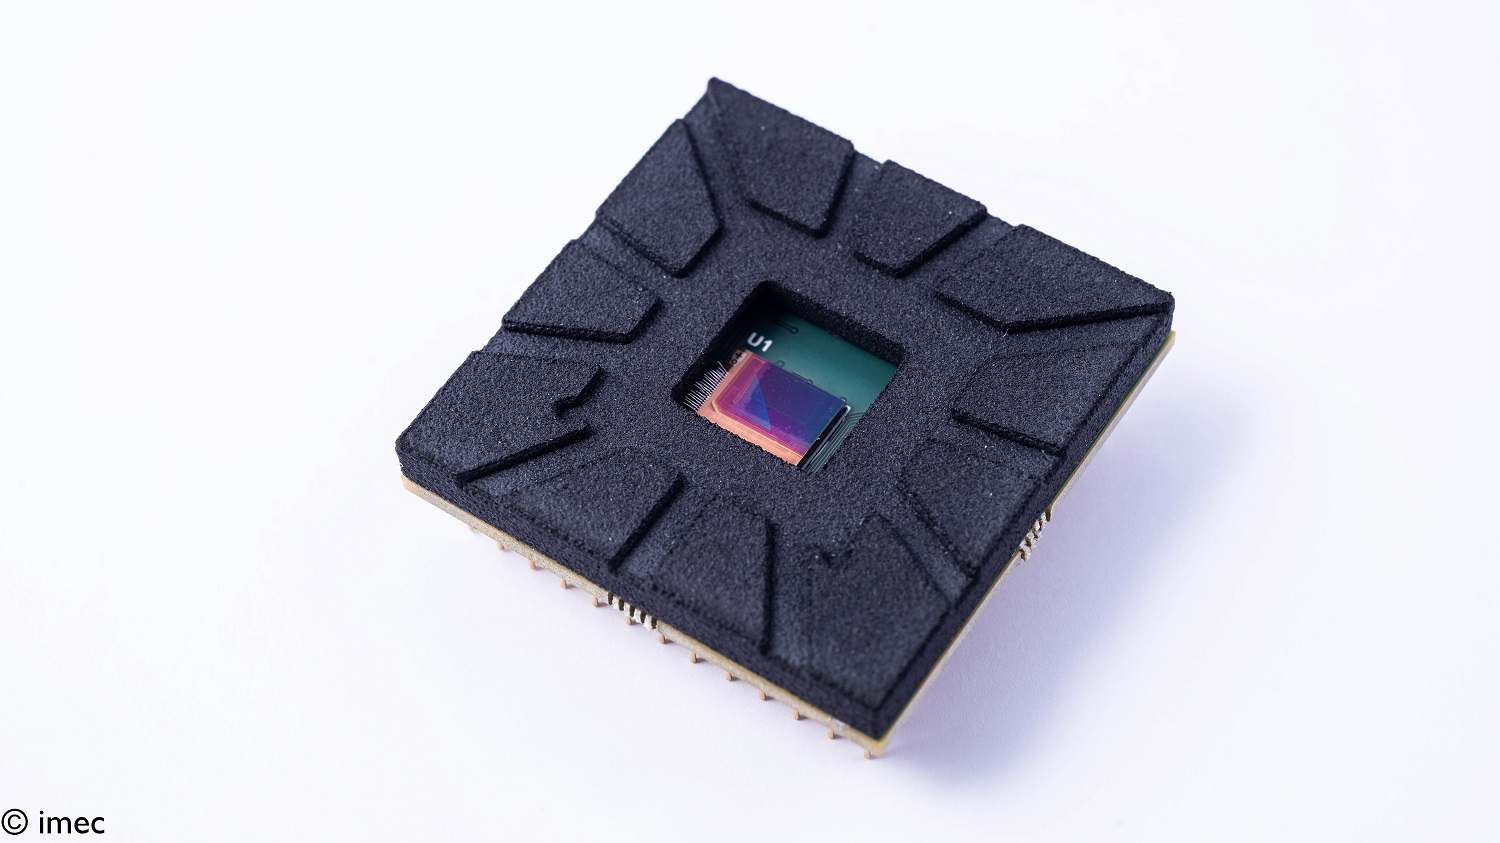 Imec's thin-film SWIR image sensors can be integrated in camera modules with standard or SWIR lenses